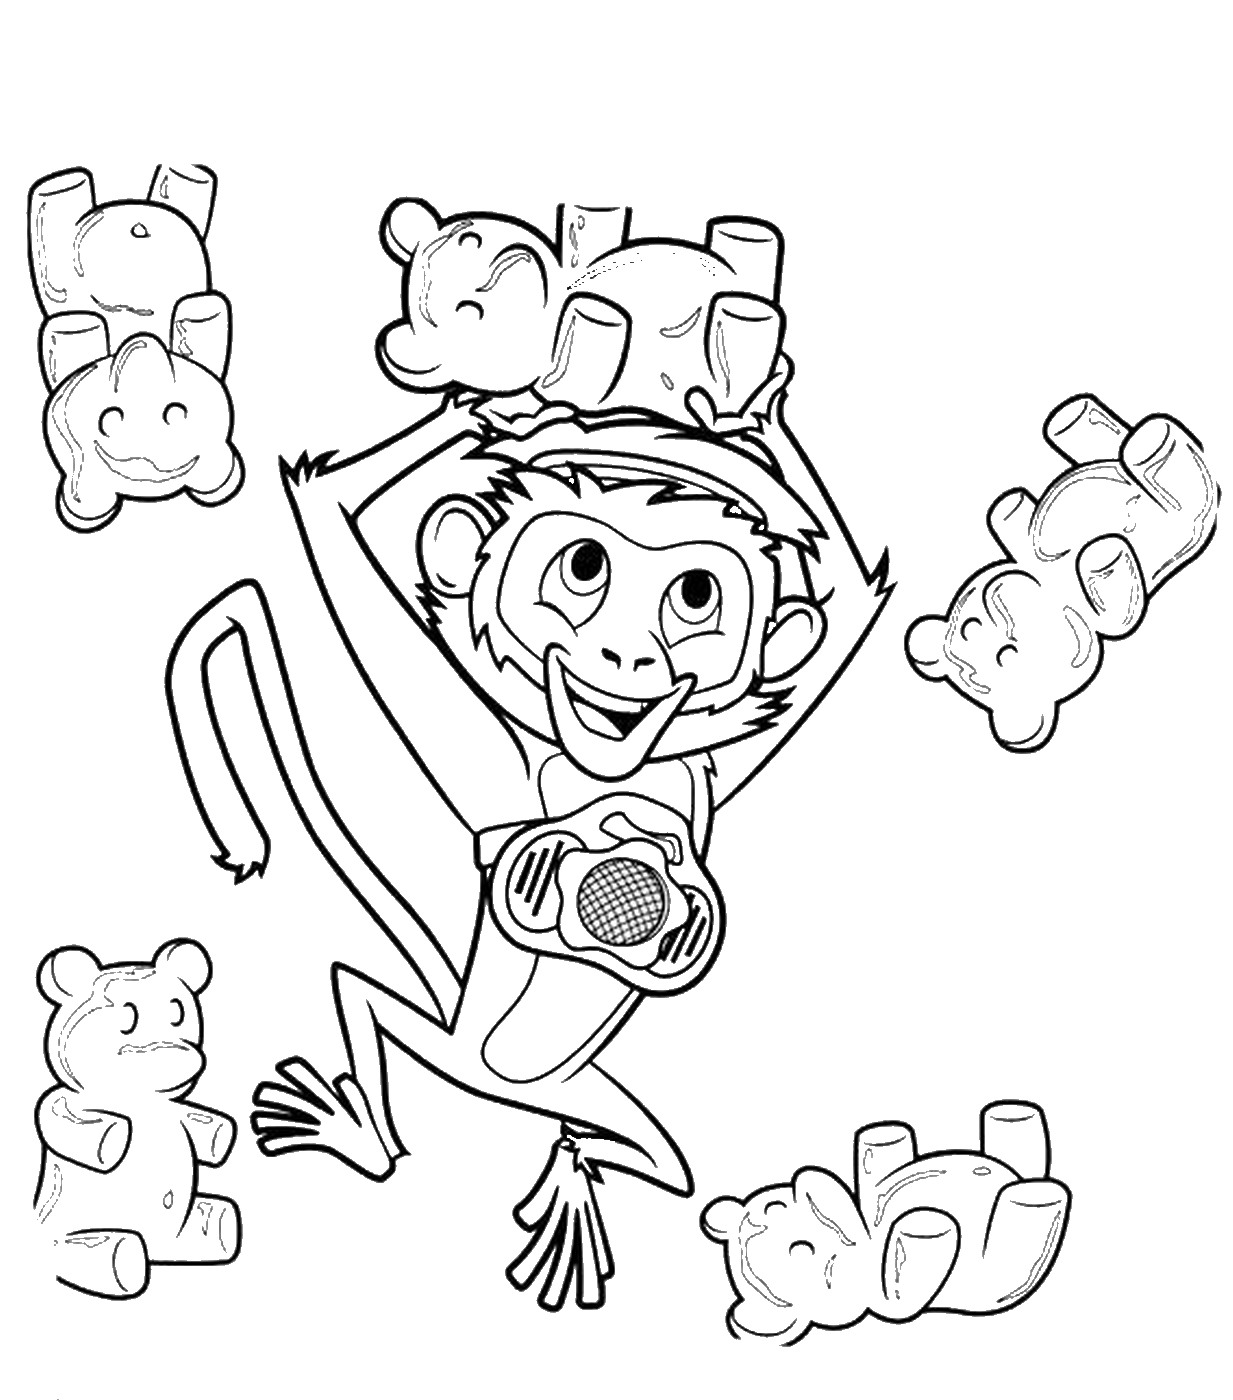 cloudy with a chance of meatballs 2 coloring pages cloudy with a chance of meatballs coloring pages chance coloring of with cloudy a 2 meatballs pages